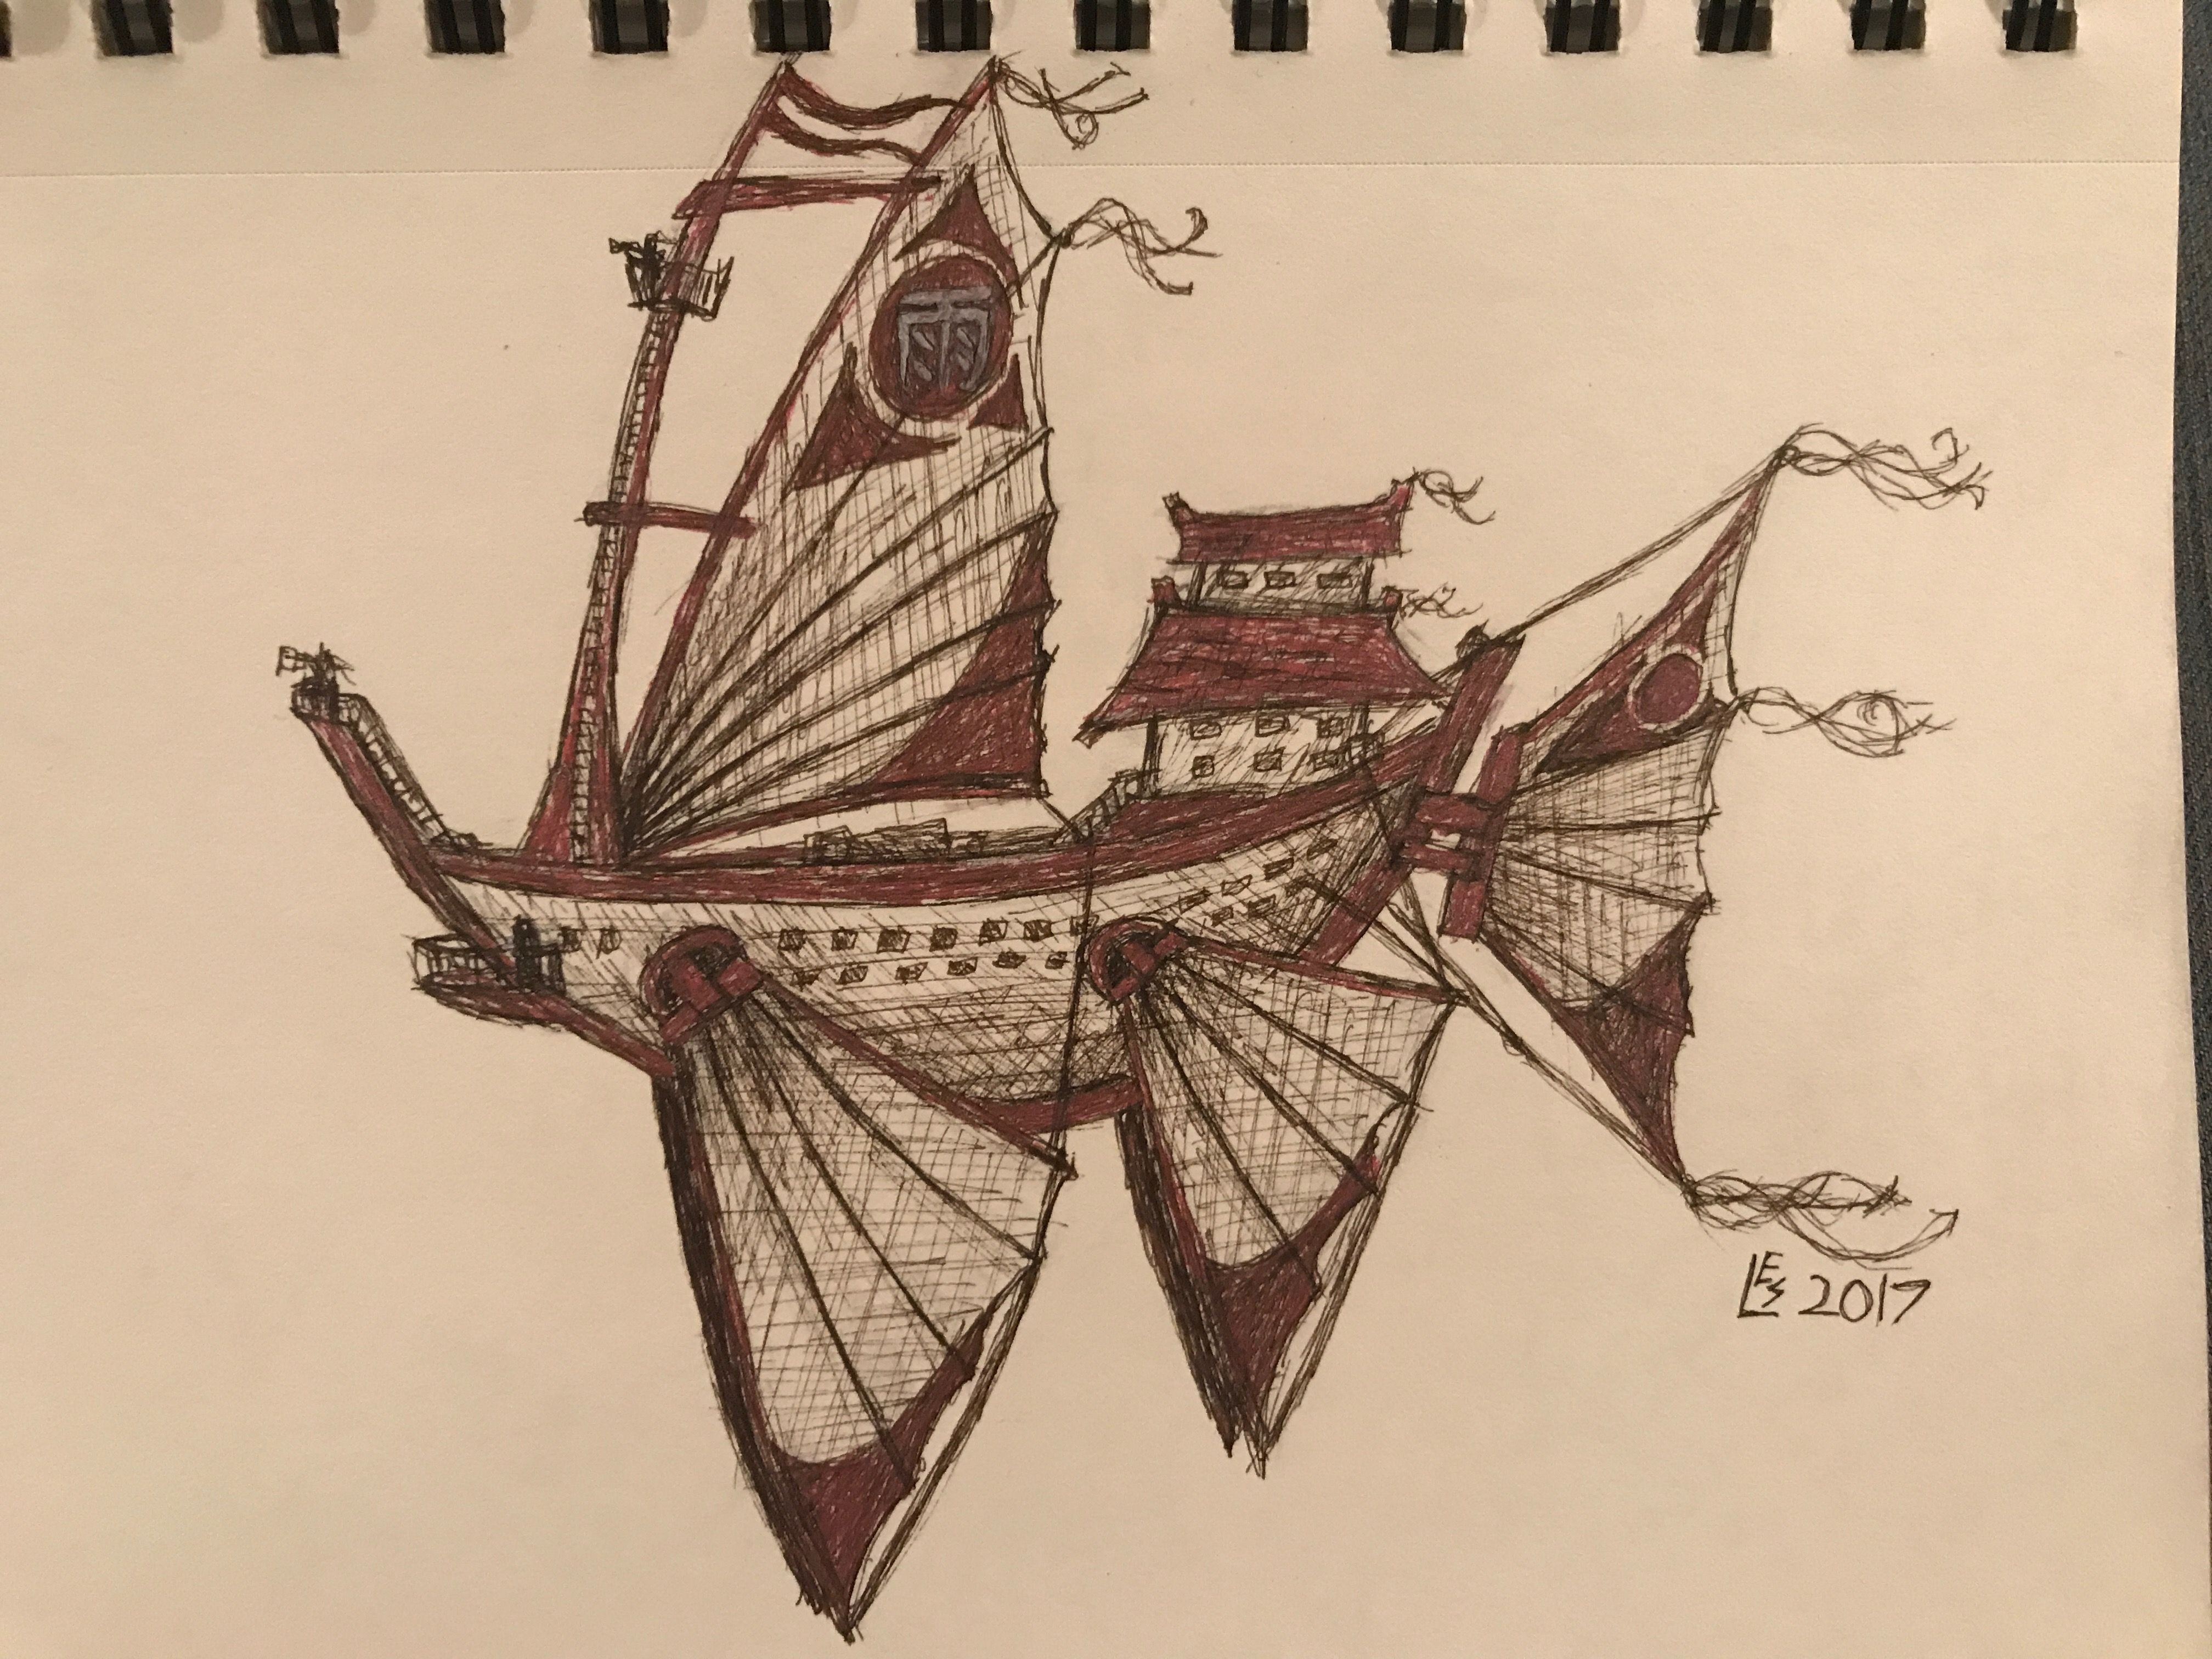 Airship Rain by Lauren Spears (aka xadodragon on deviantart). I have recently gotten really into airships and the like and have always loved the movie Treasure Planet. Feel free to rejoin with credit!